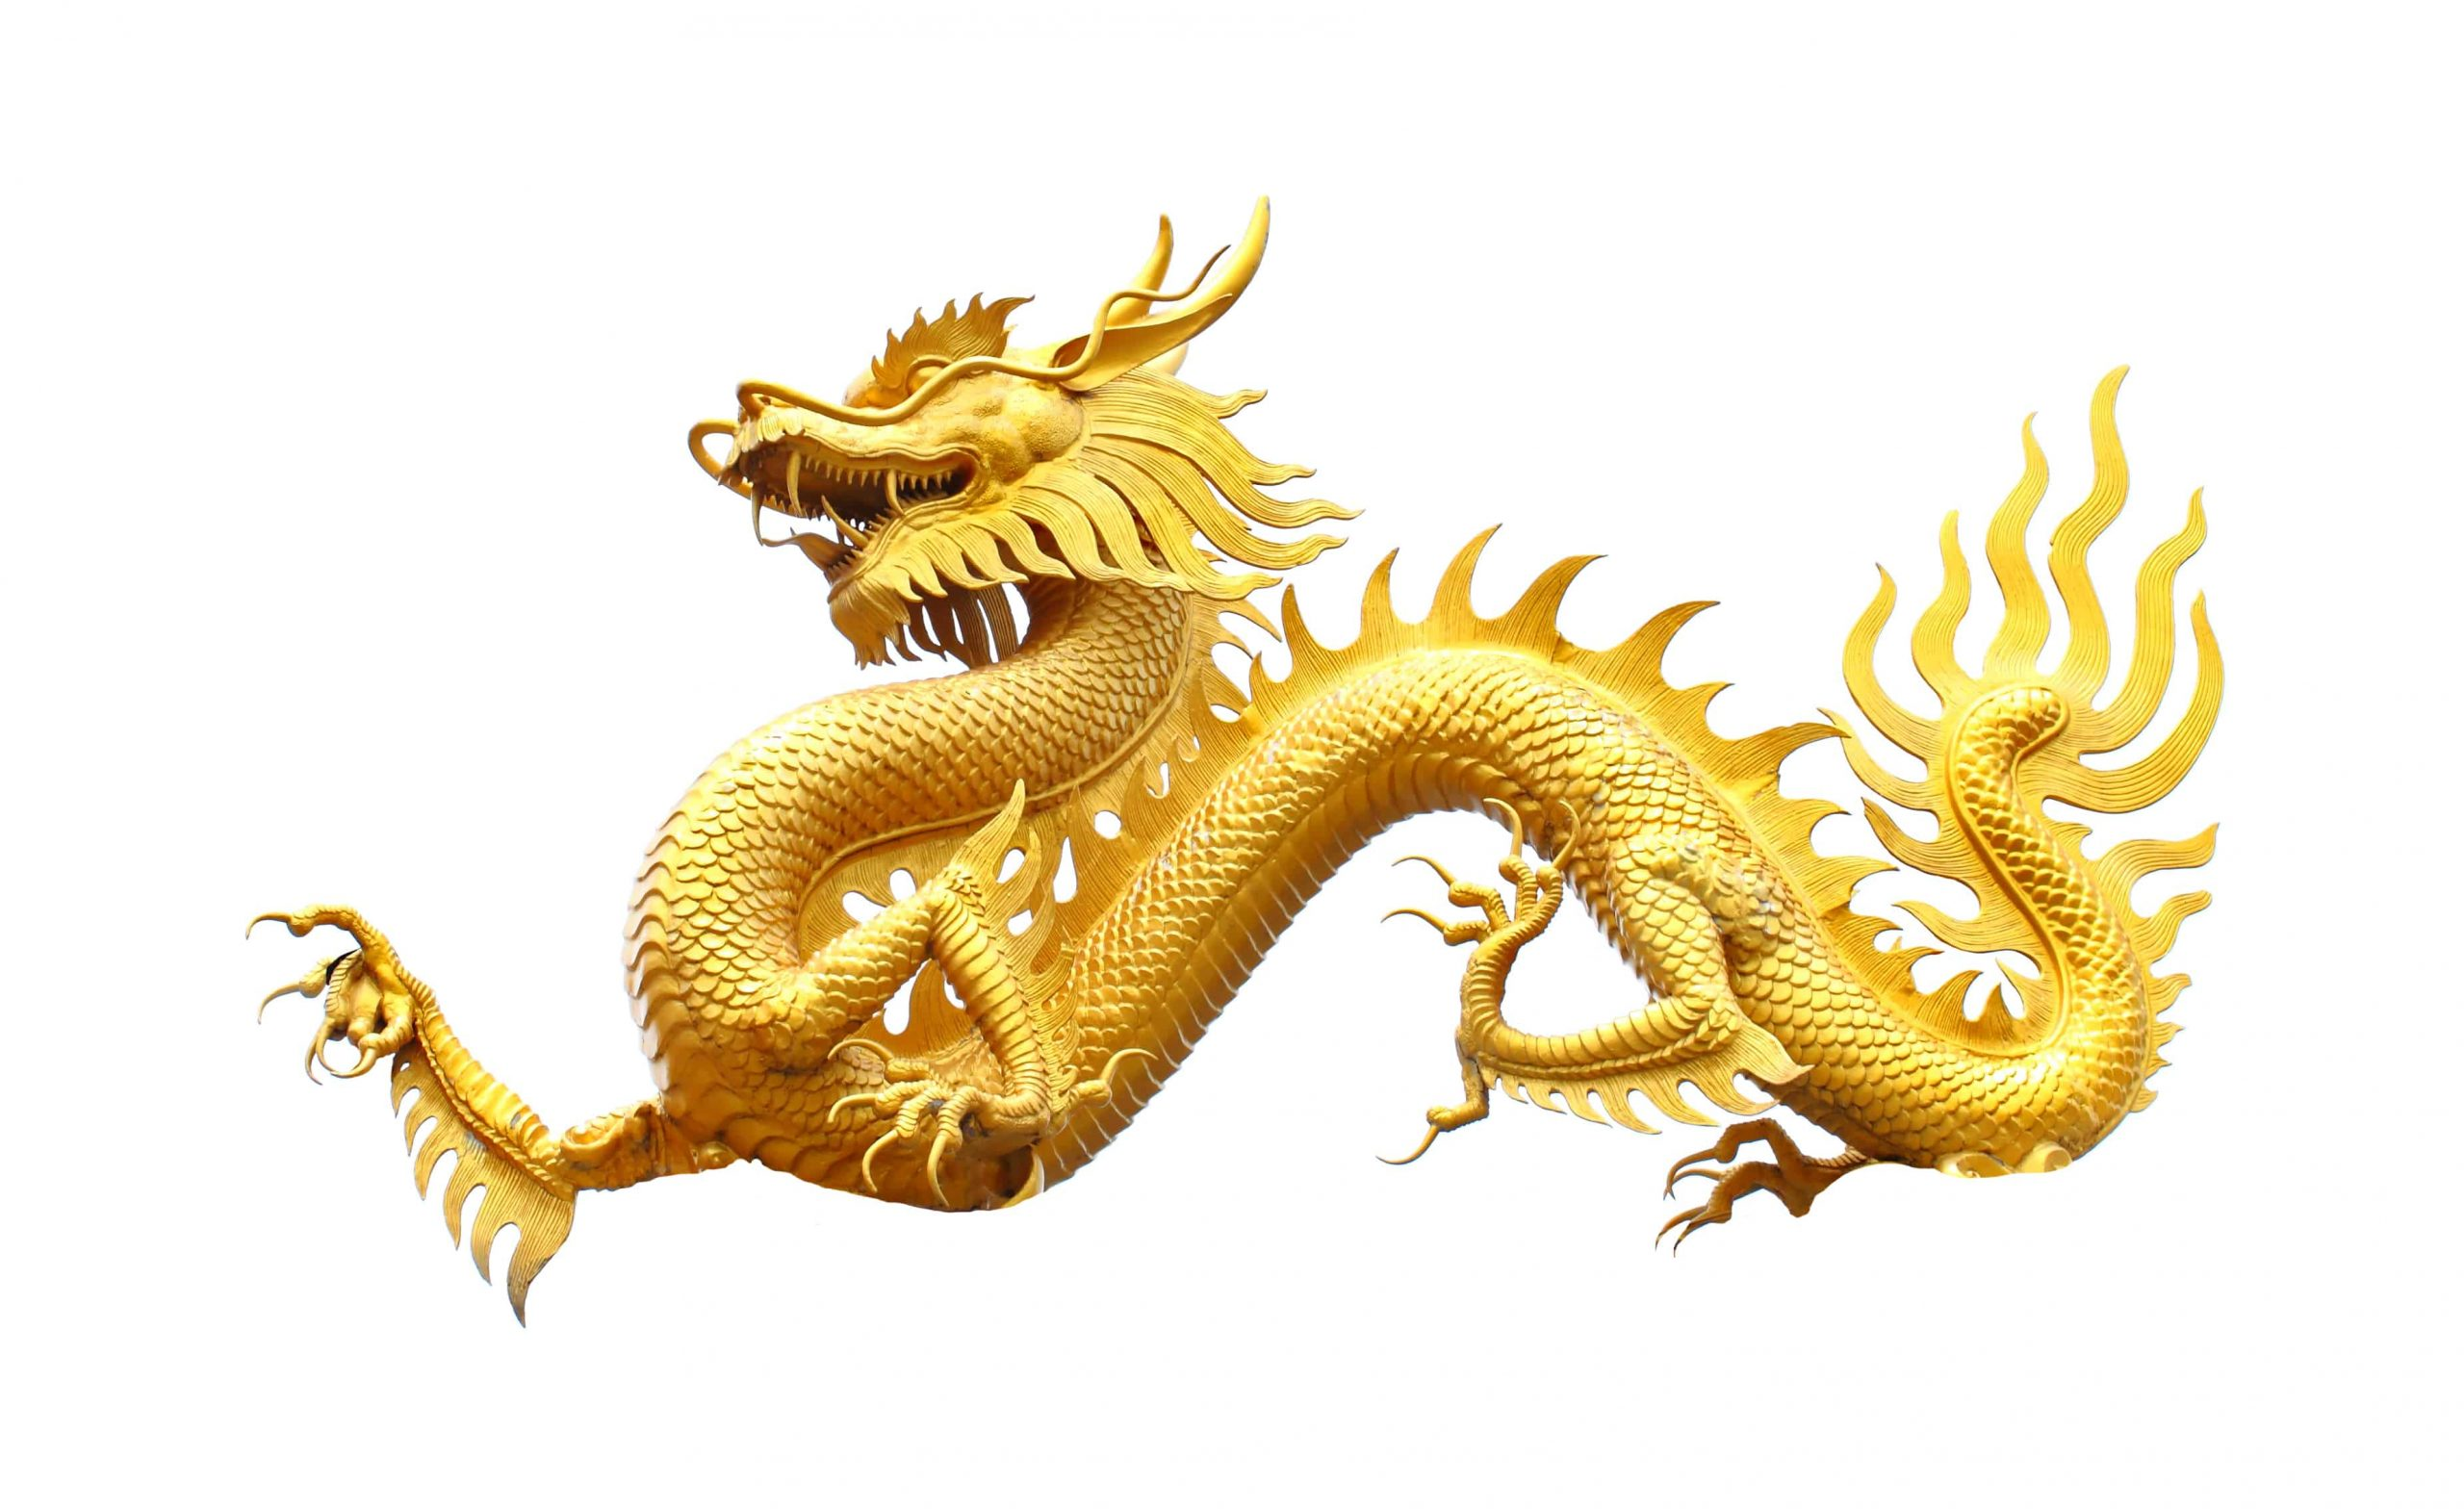 Yellow dragon dream meaning